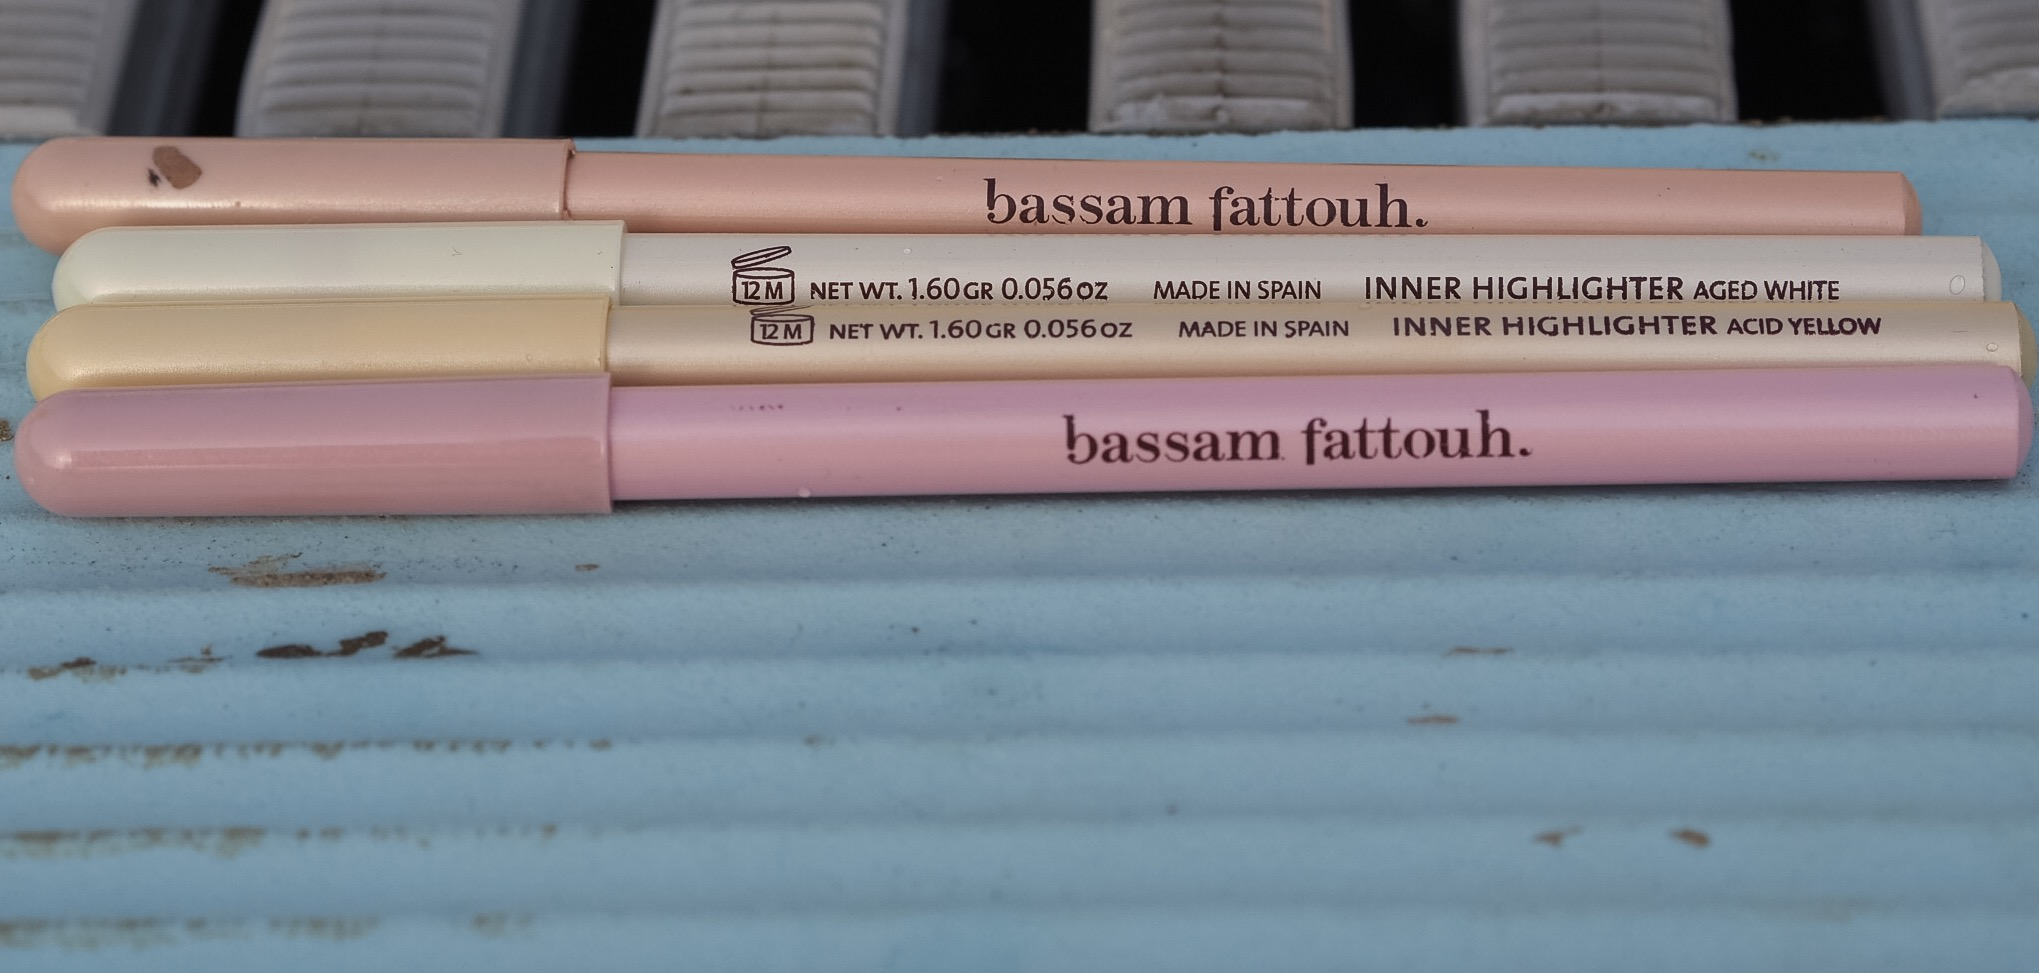 bassam fattouh inner highlighter review